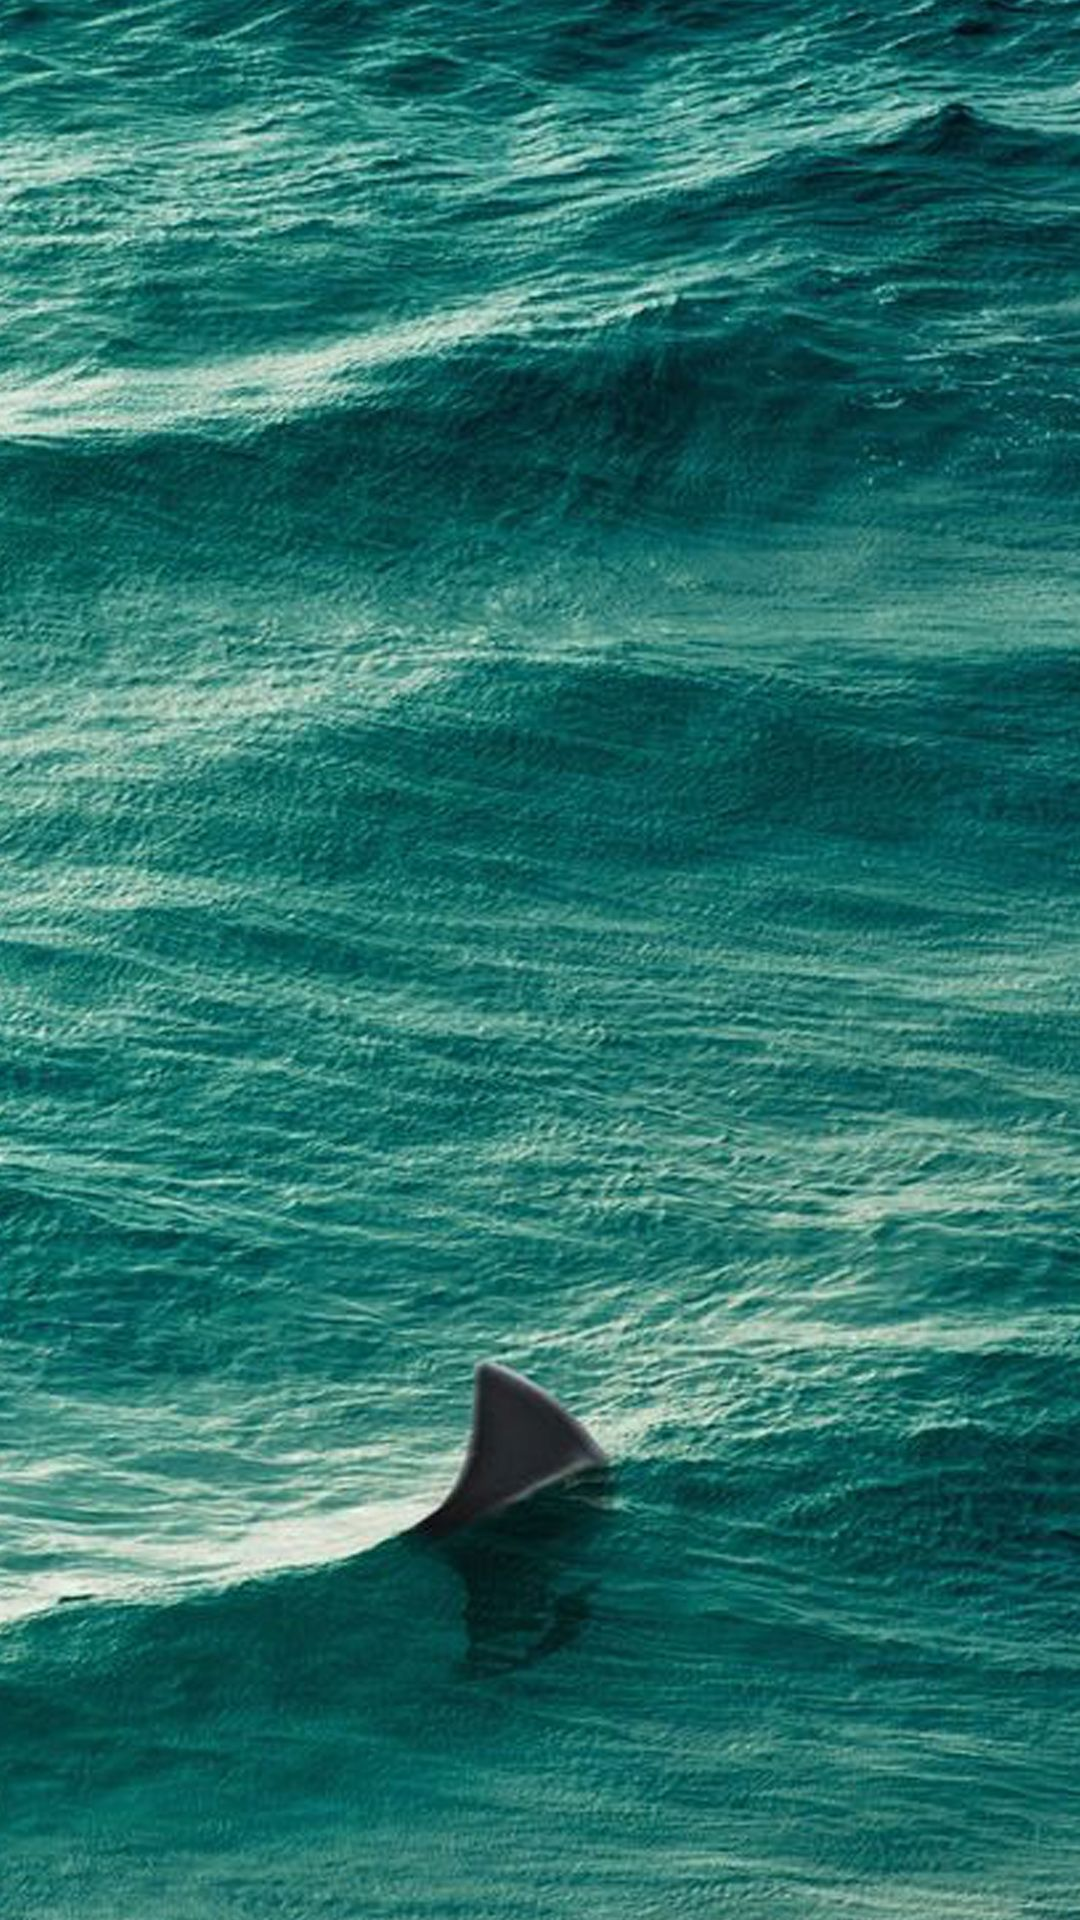 Shark's dorsal fin to the surface of the water Types of